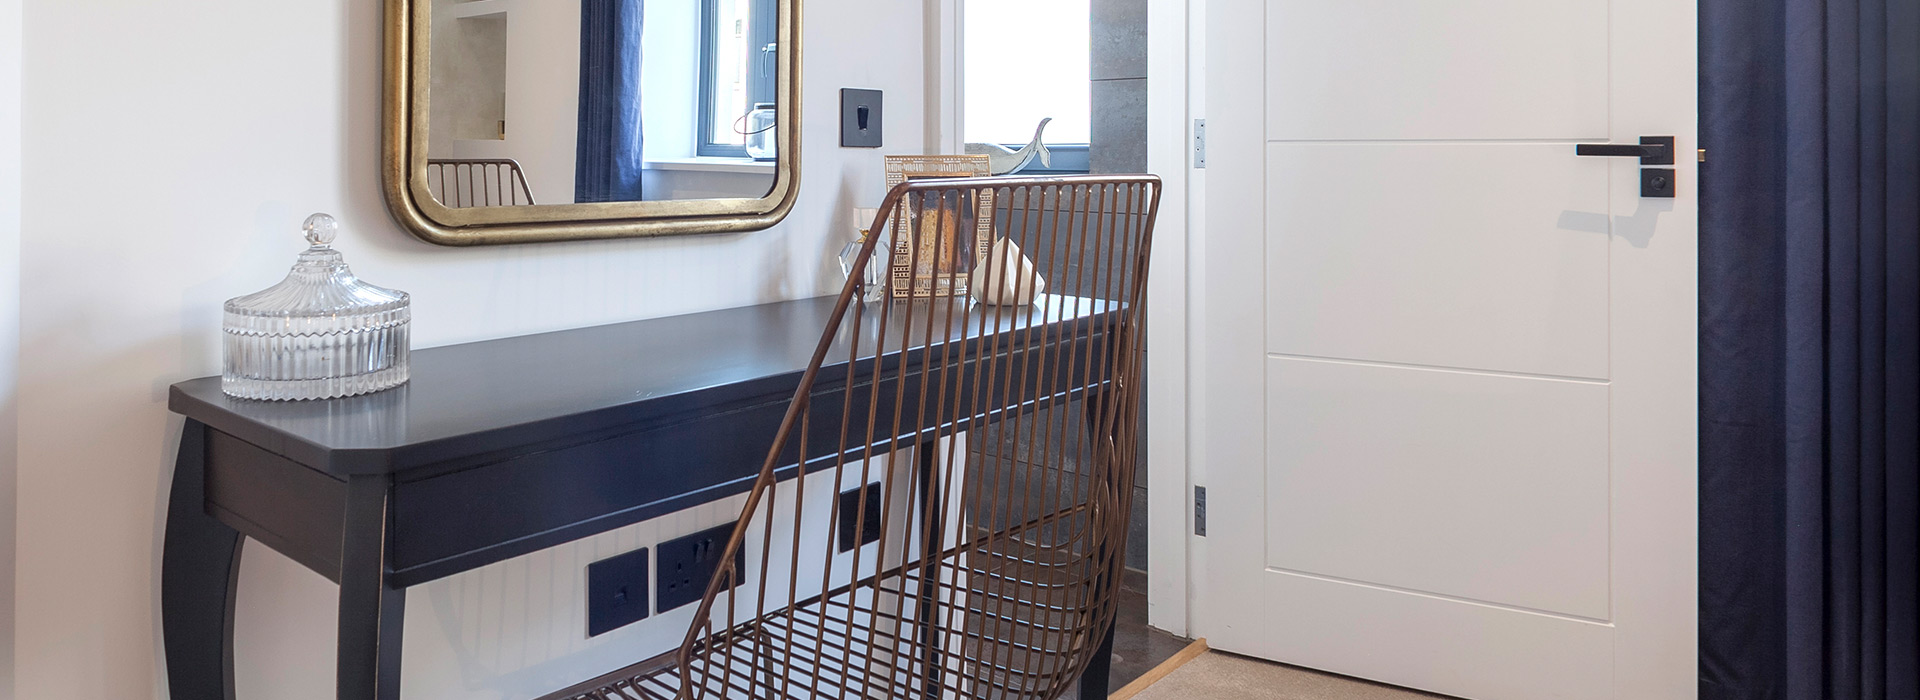 Side table with wire chair